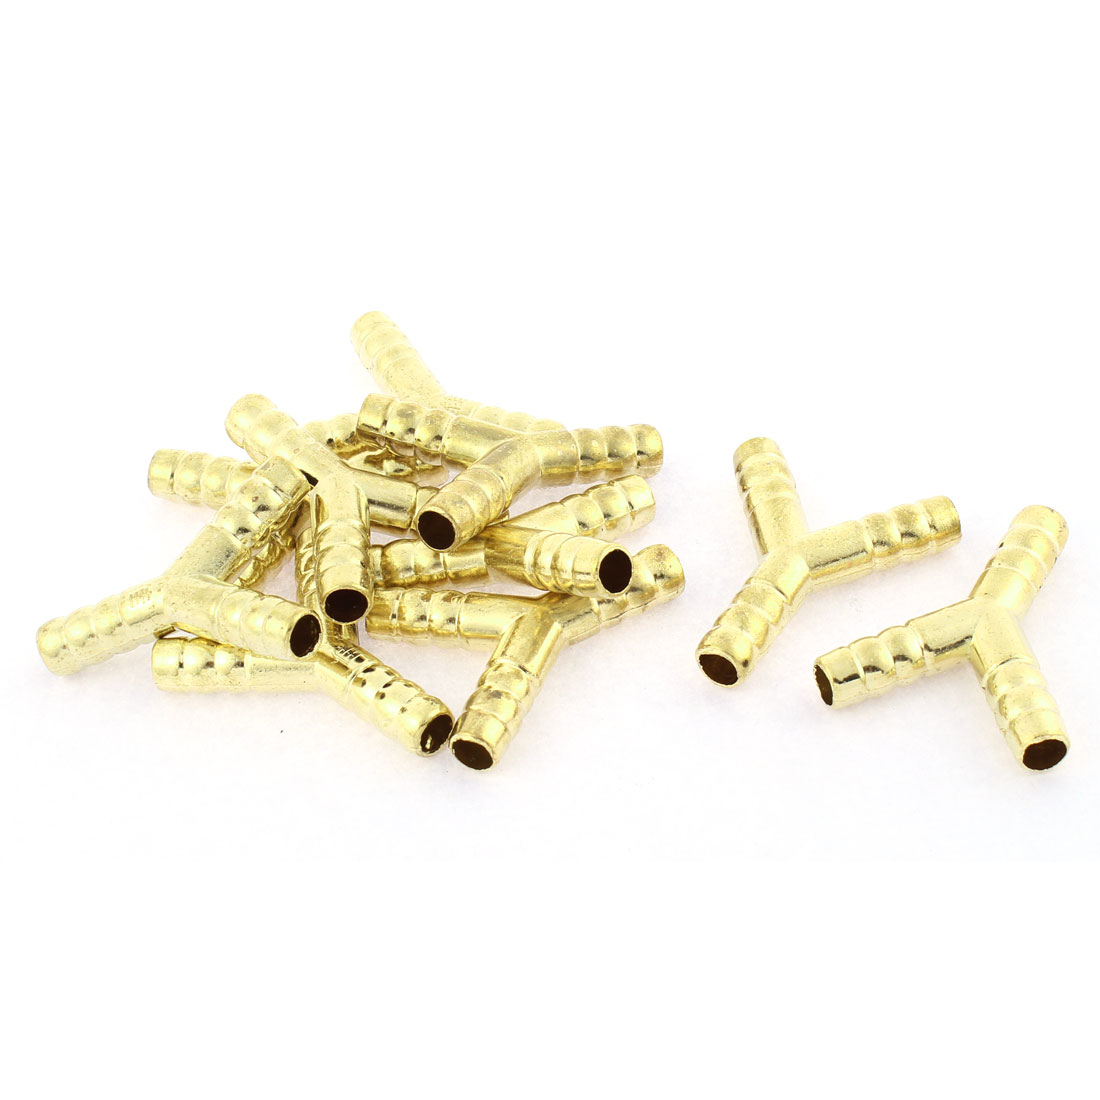 Gas Pipe Y Shaped Hose Barb Fitting Adapter Coupler Connector Joiner 10 Pcs